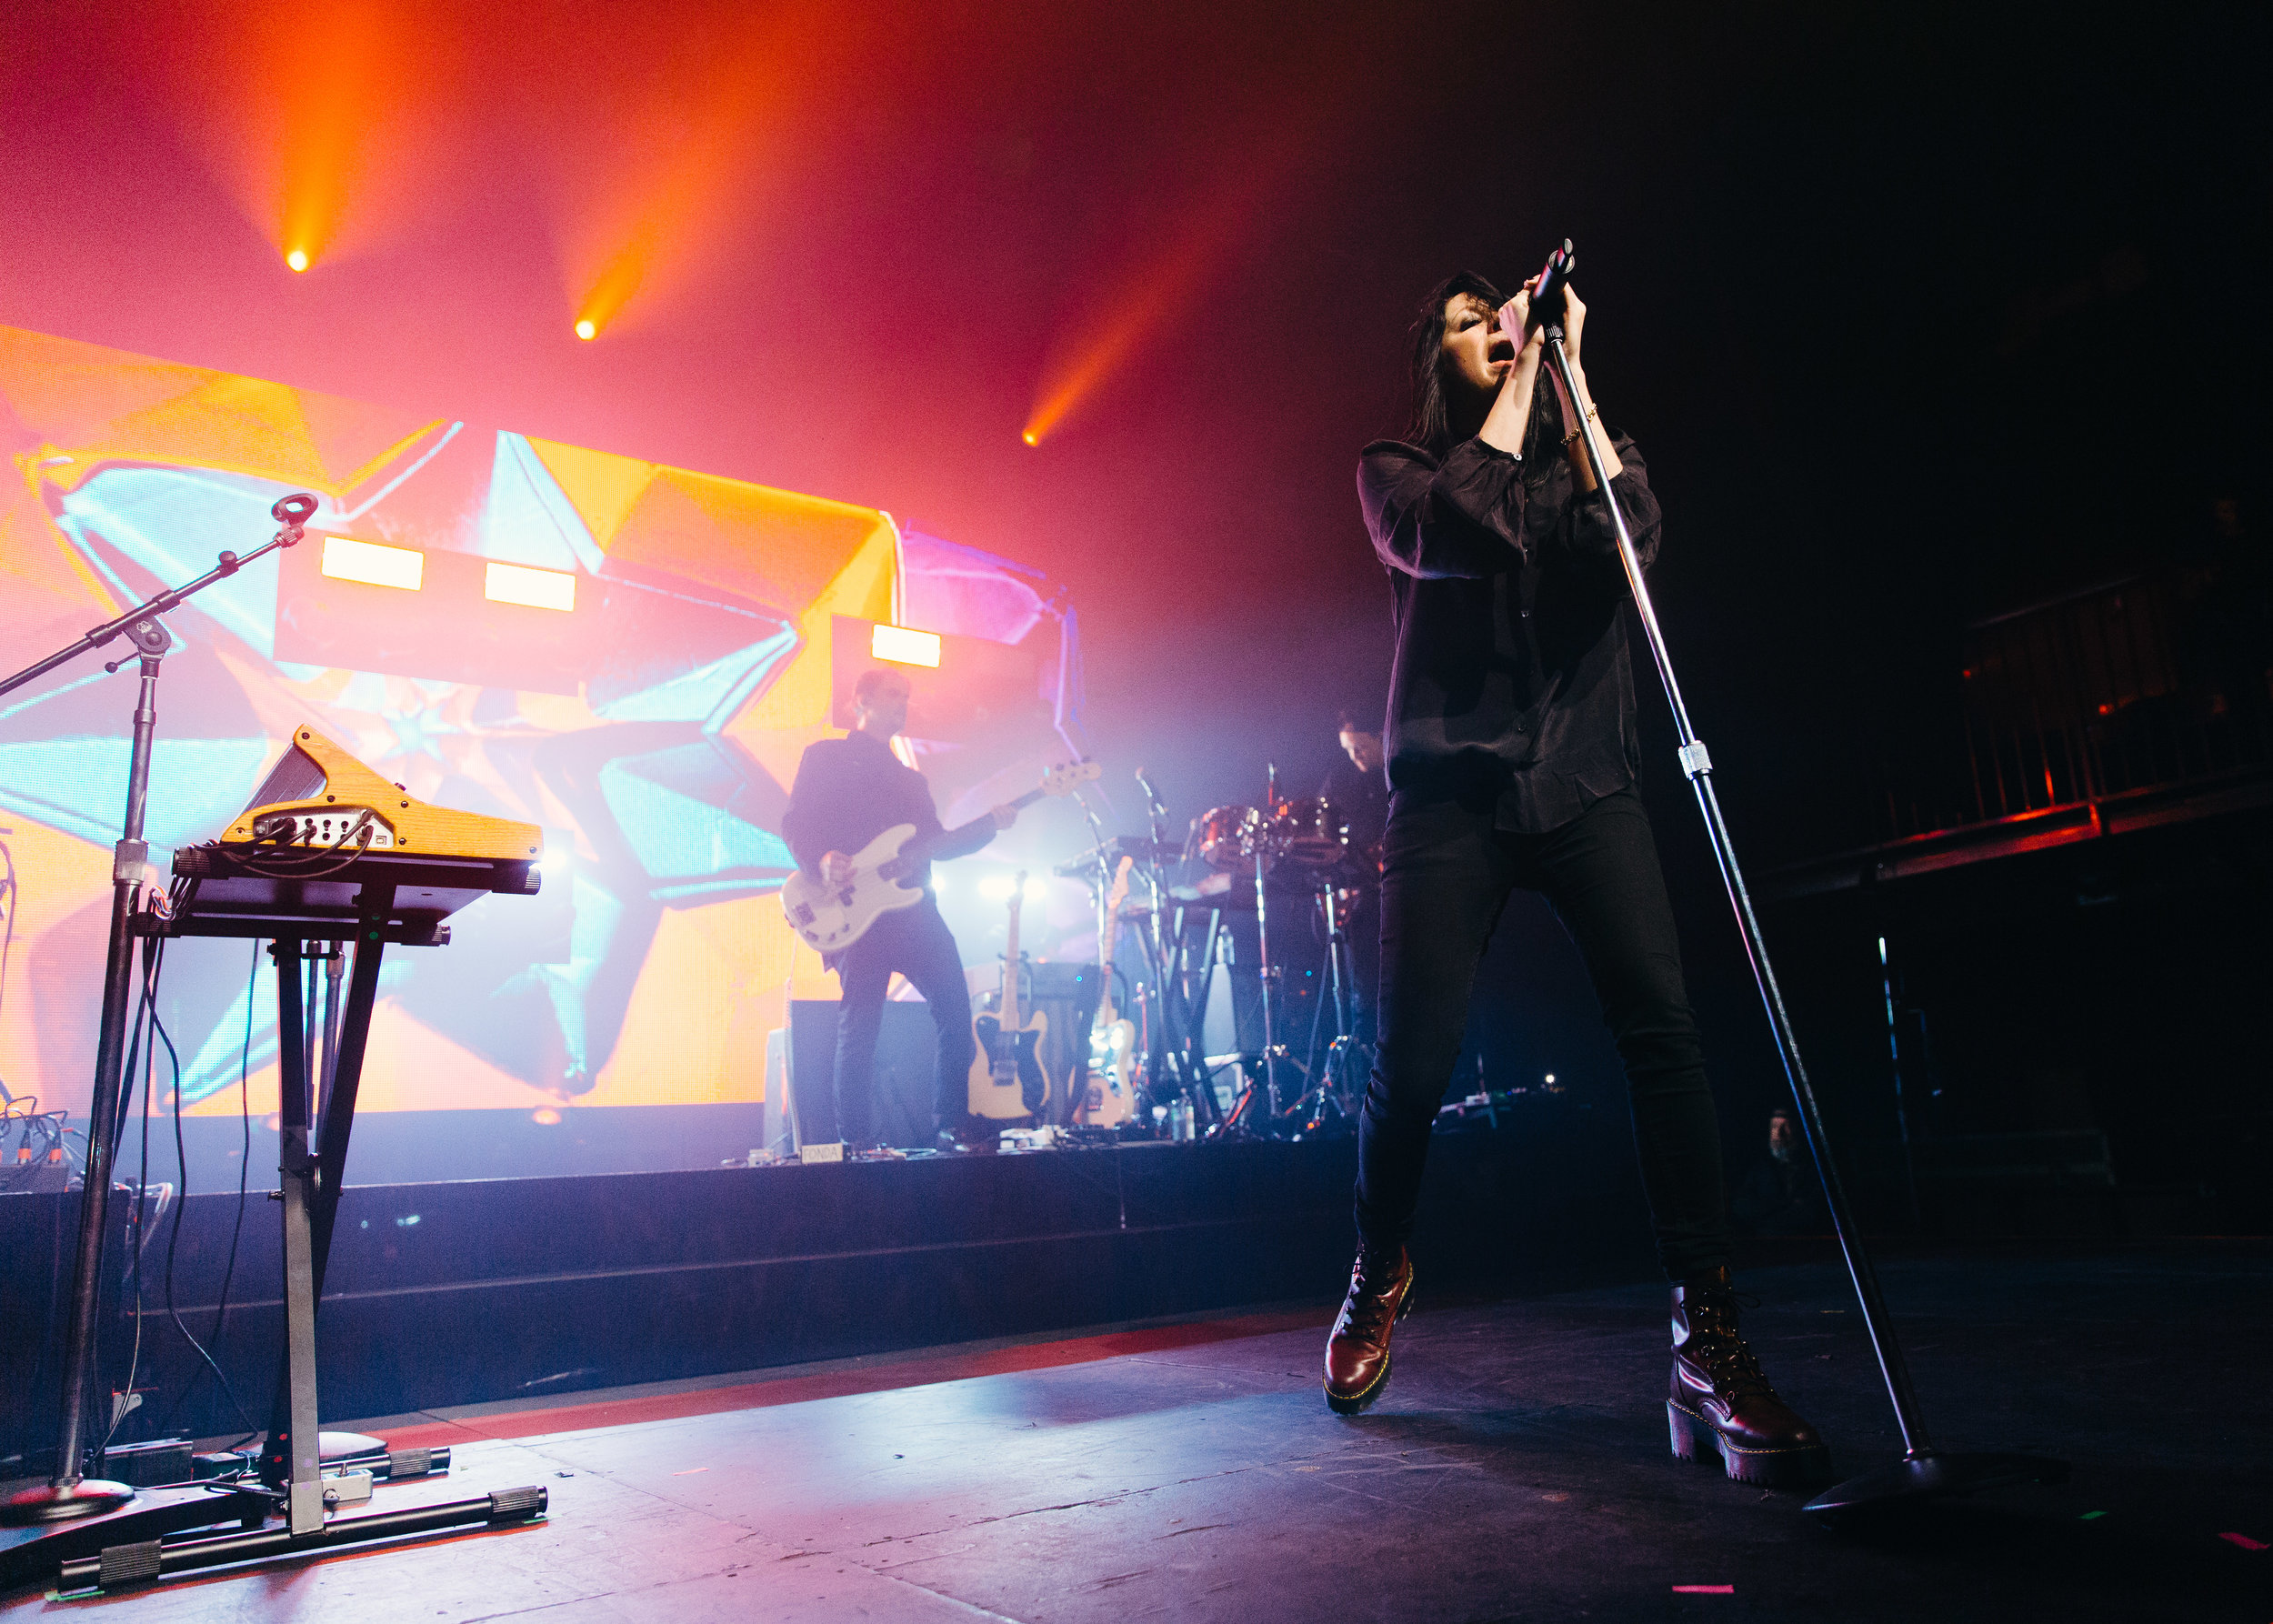 kirby-gladstein-photography-kflay-concert-fonda-theatre-los-angeles-2018-6